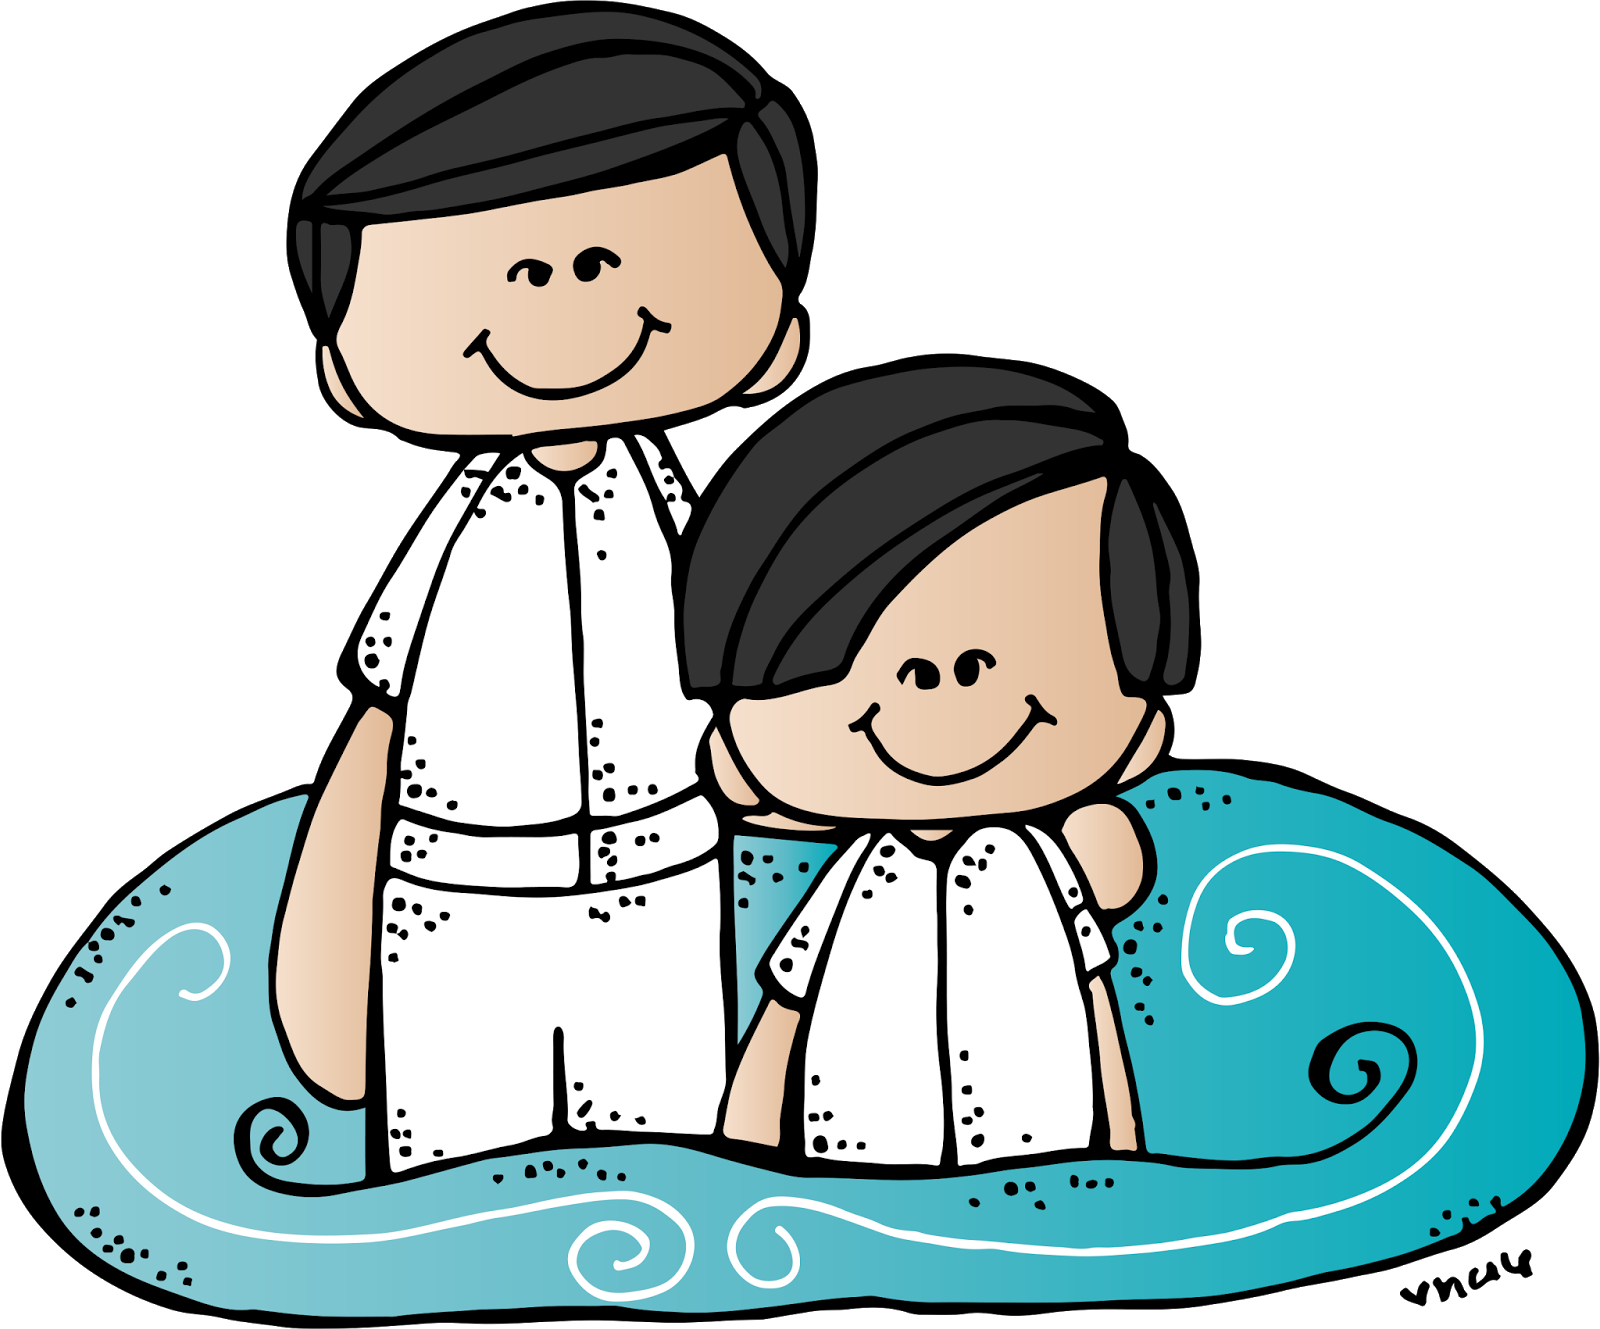 png free library Lds clip art net. Baptism clipart child born.